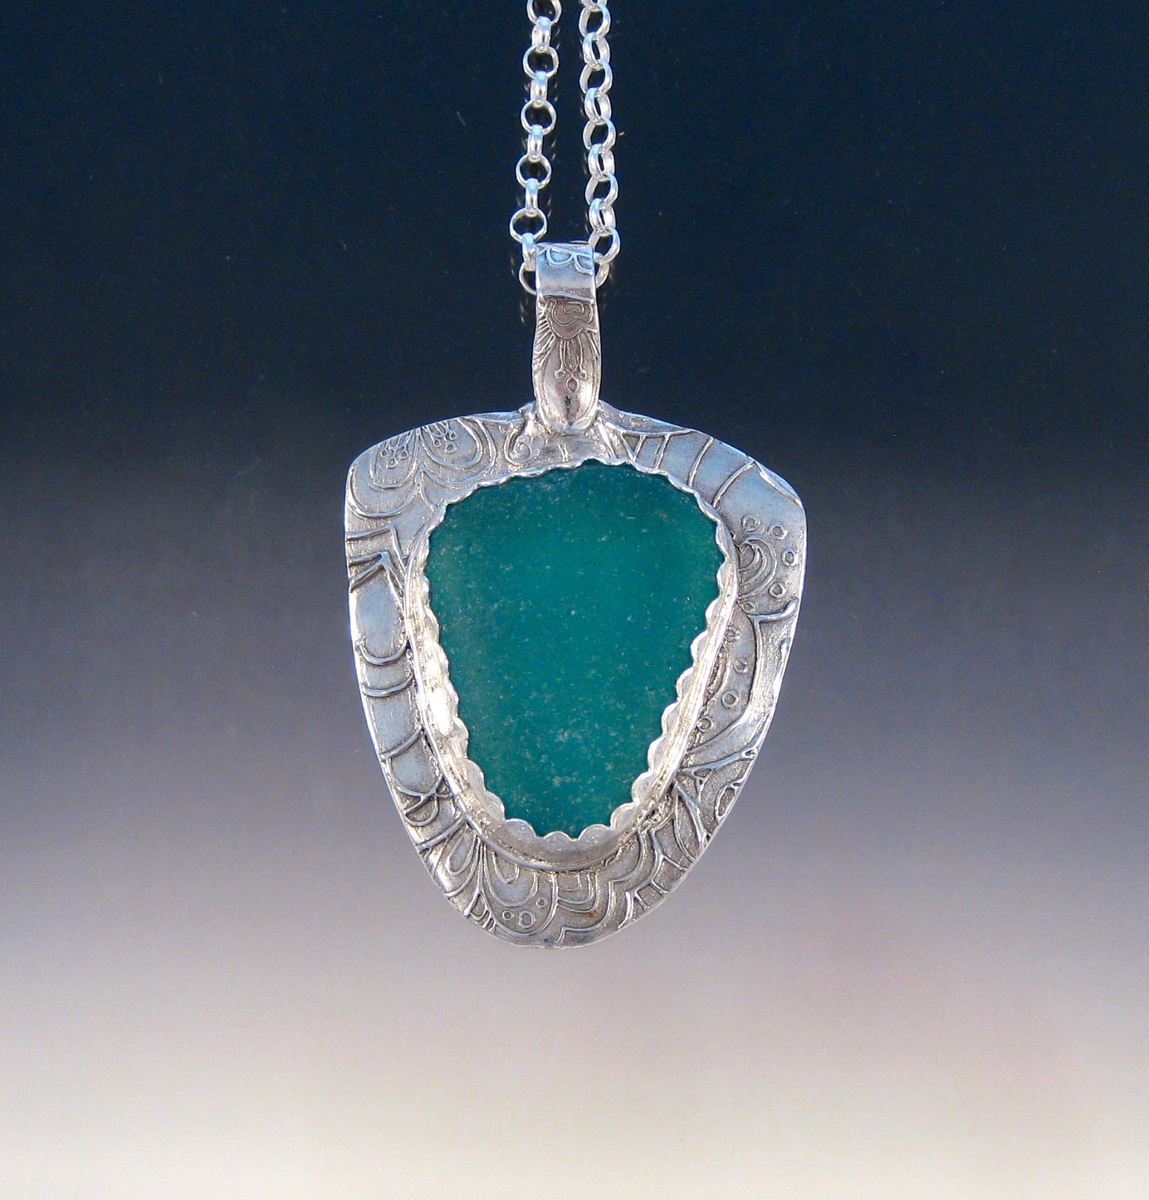 P5407 - Big teal sea glass pendant (large view)